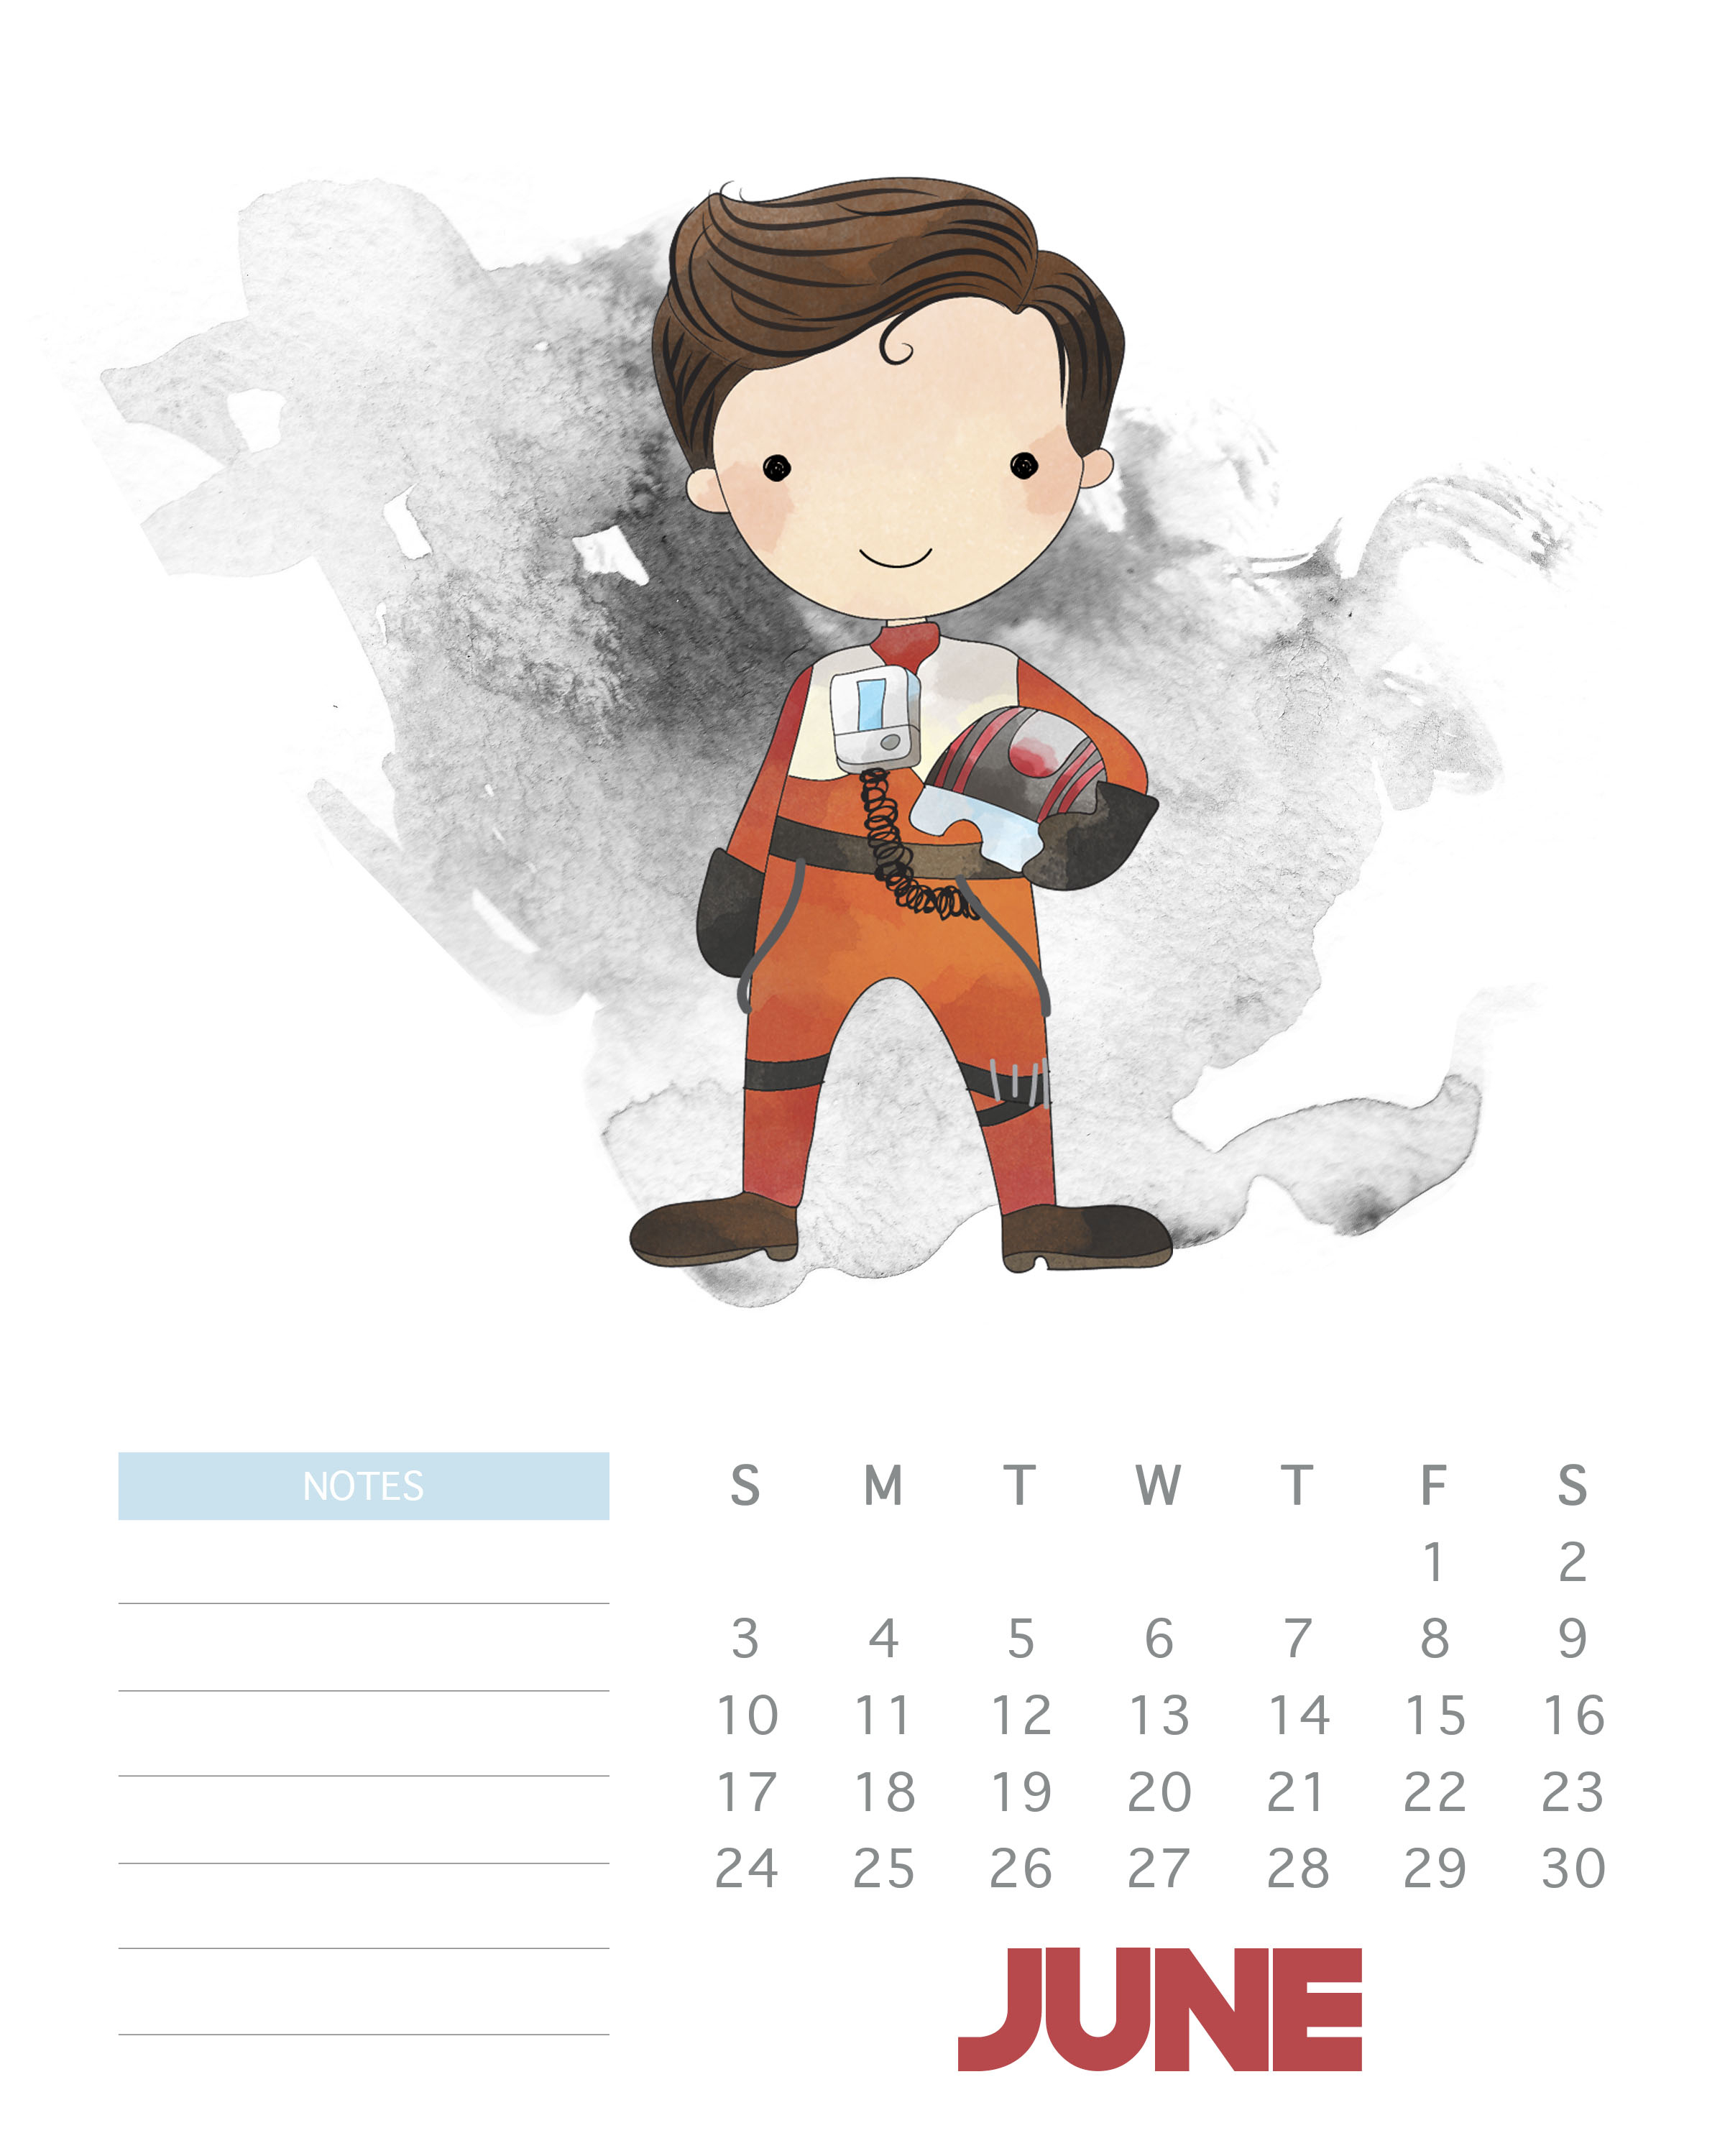 2018 Star Wars Monthly Calendar | Max Calendars pertaining to Star Wars Calendar Printable